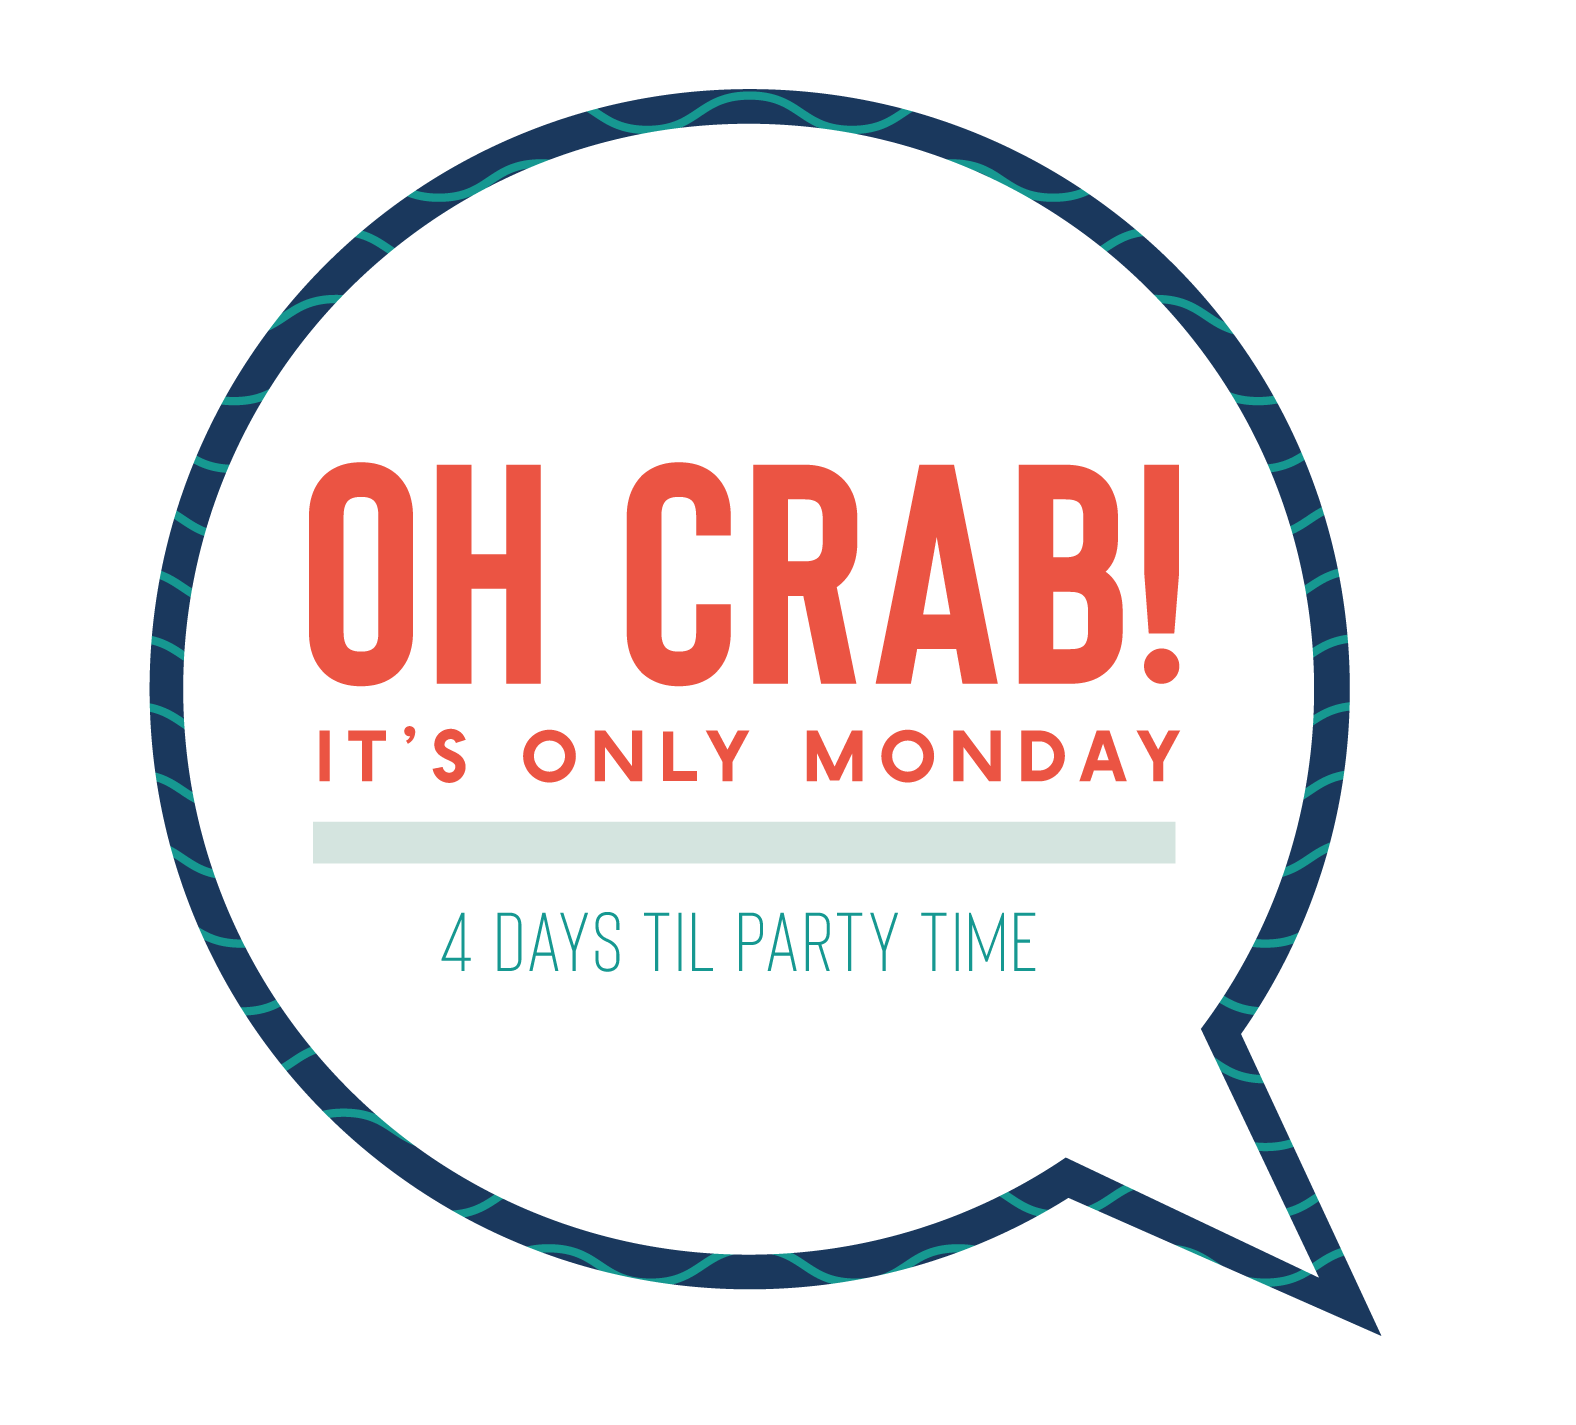 SummerParty_crabbycountdown_01-04.png